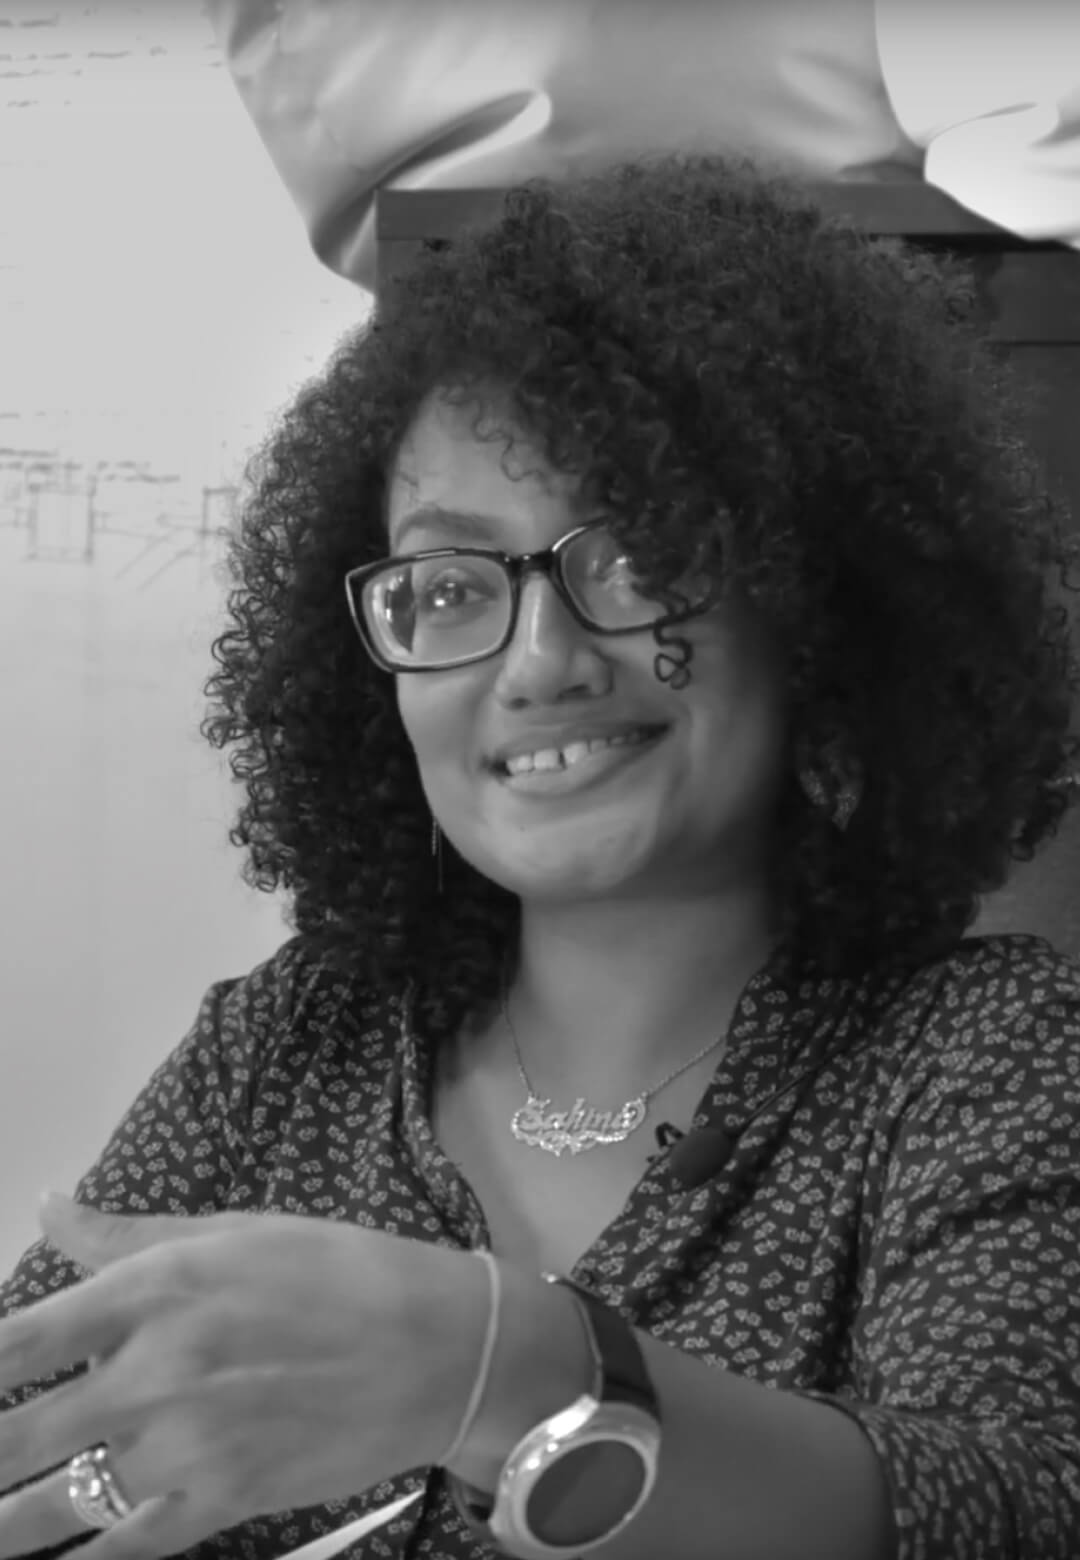 An interview with Sakina Dugawalla Moeller, lighting designer at Light.Func, for Women in Lighting | Sakina Dugawalla Moeller | Light.Func | Women in Lighting| Light Collective| STIRworld